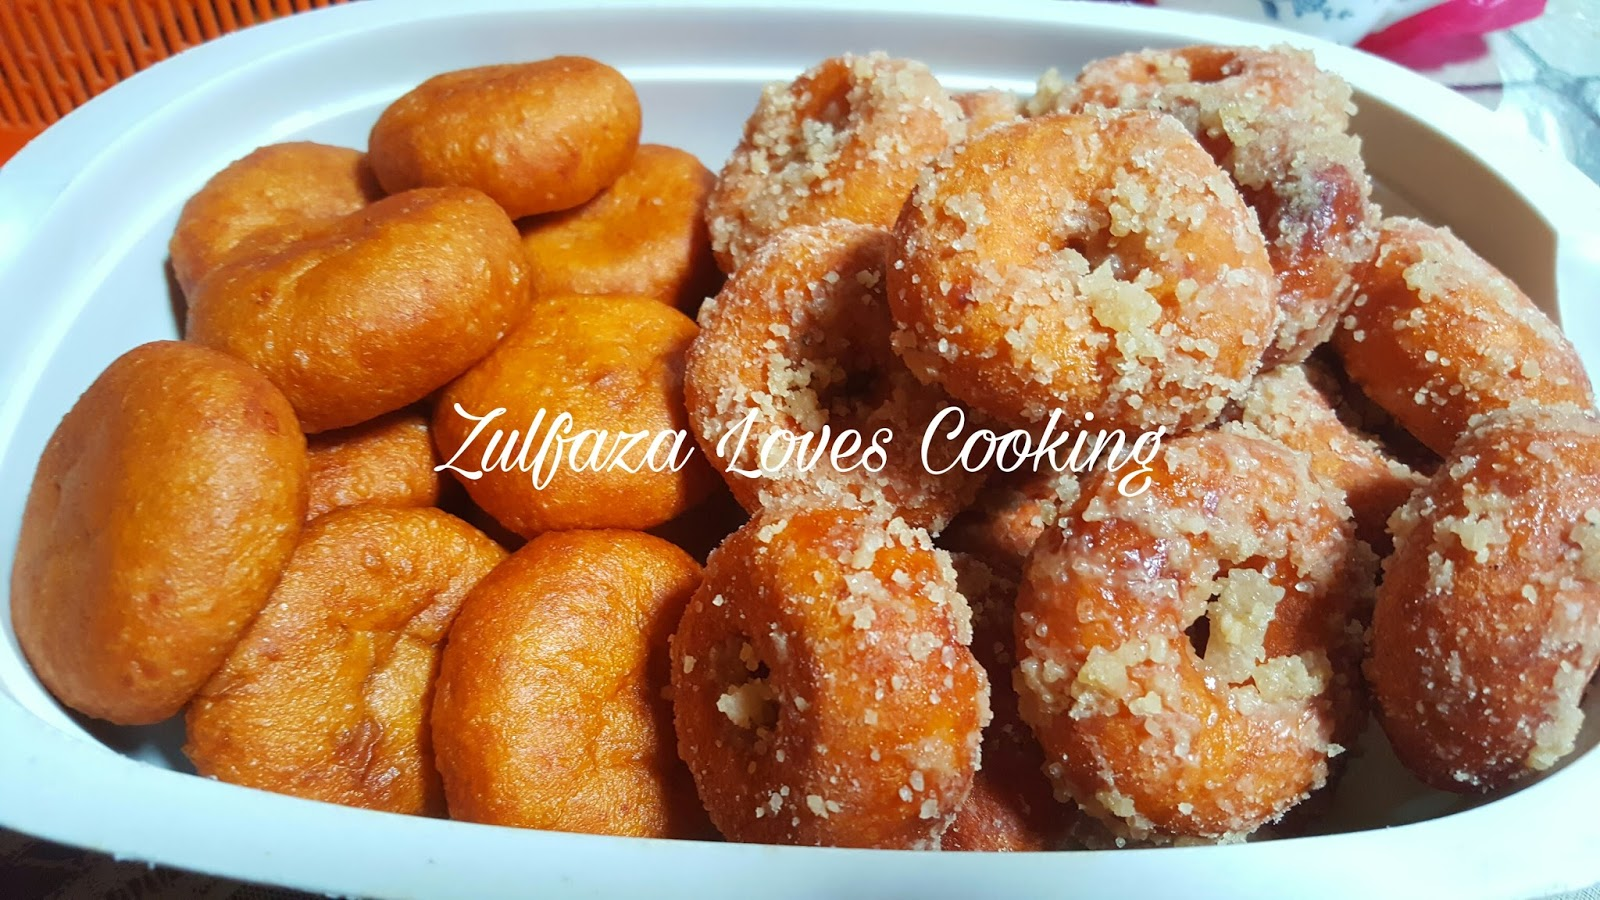 ZULFAZA LOVES COOKING: Kuih Cucur Badak